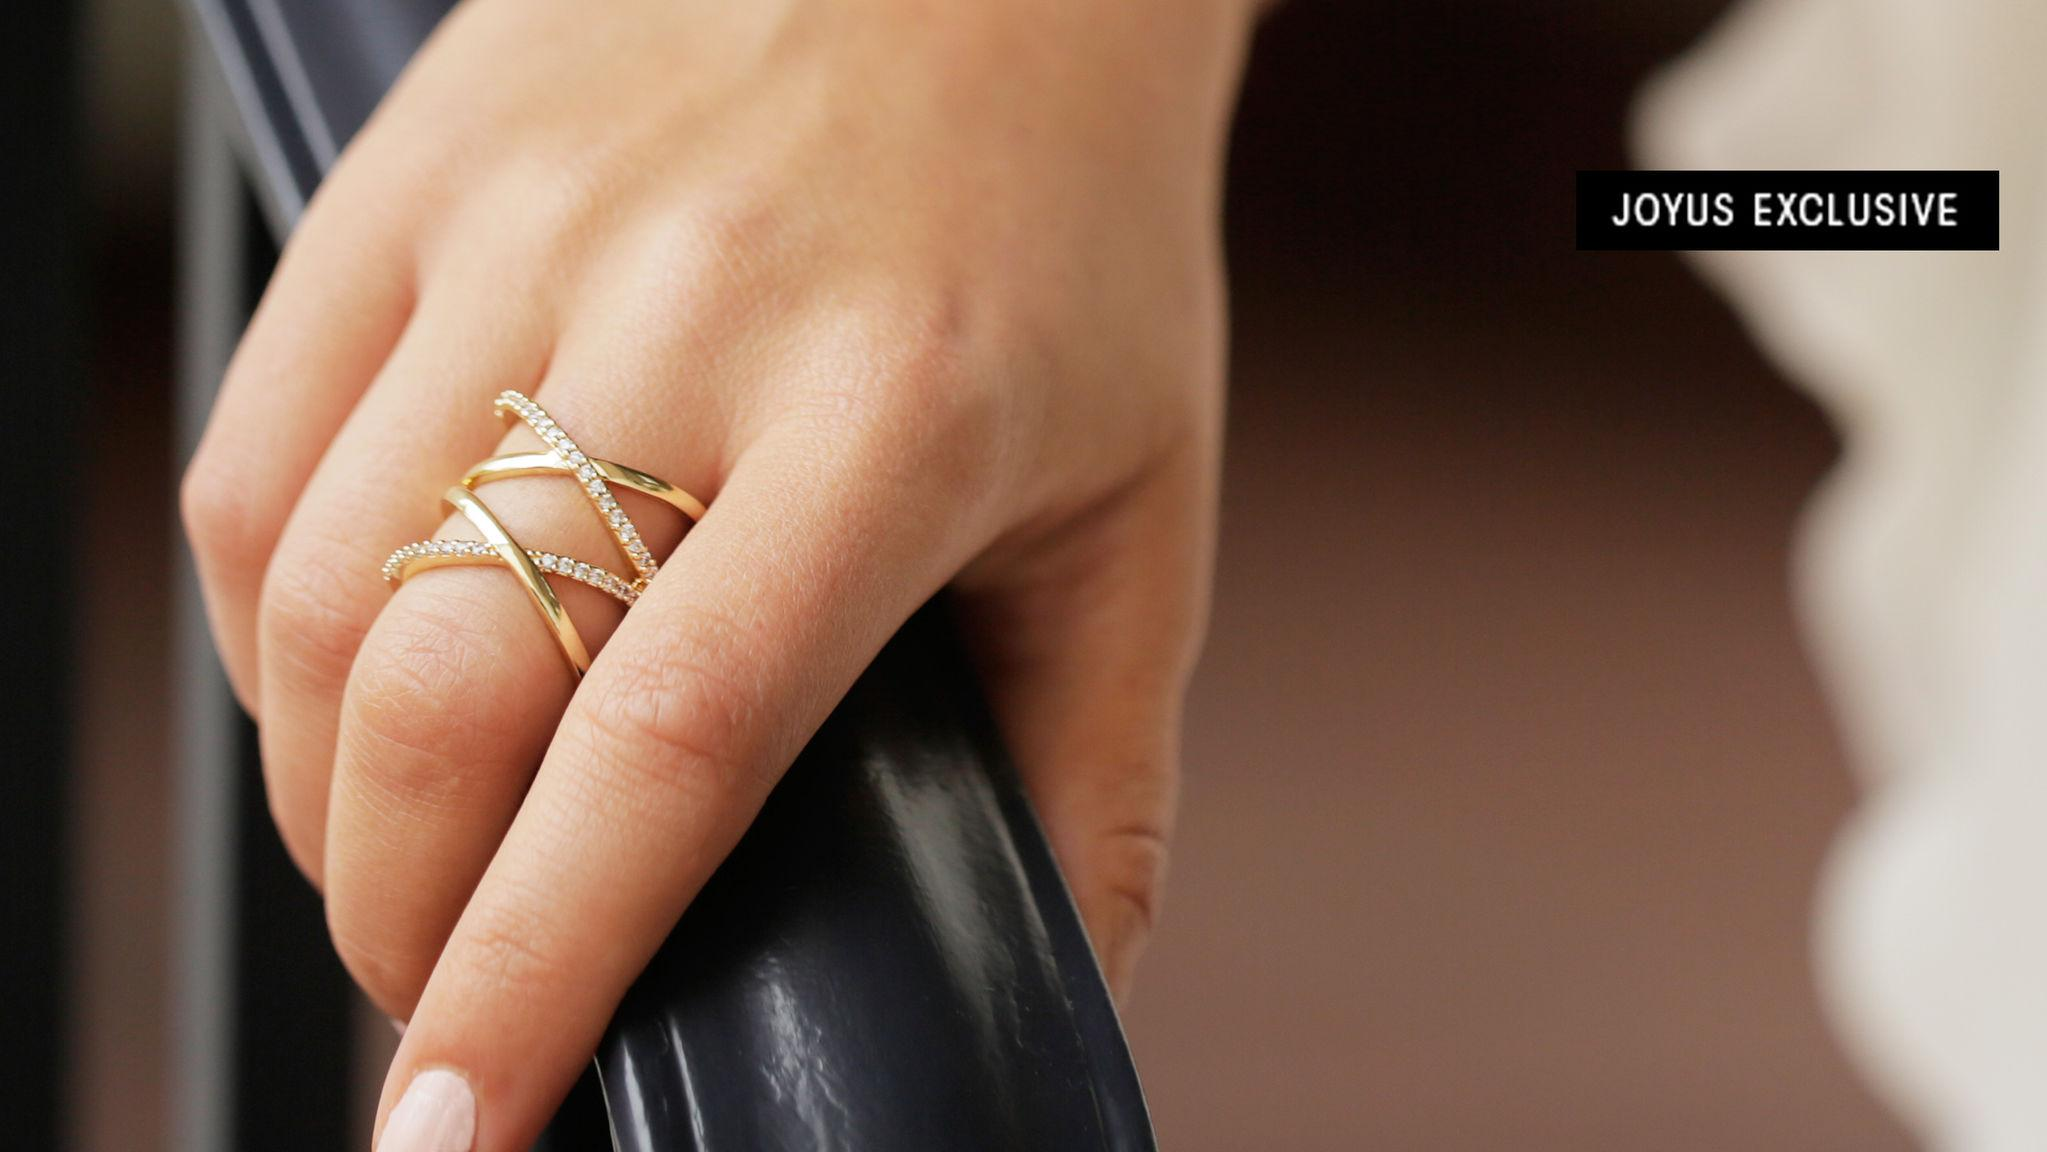 Double Down on Style in Our New X Ring